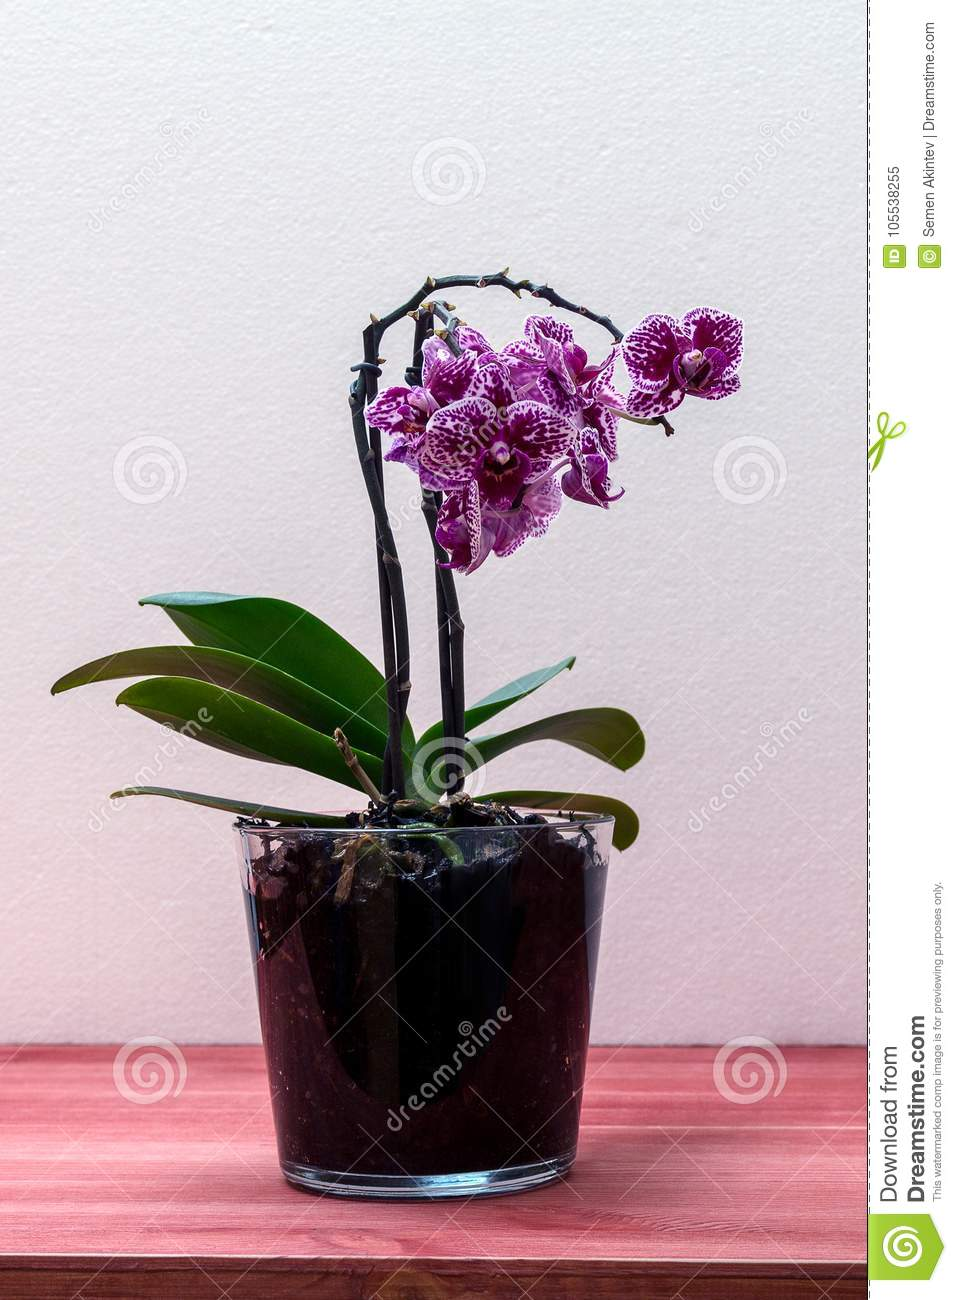 Orchid phalaenopsis in a glass pot on a wooden table